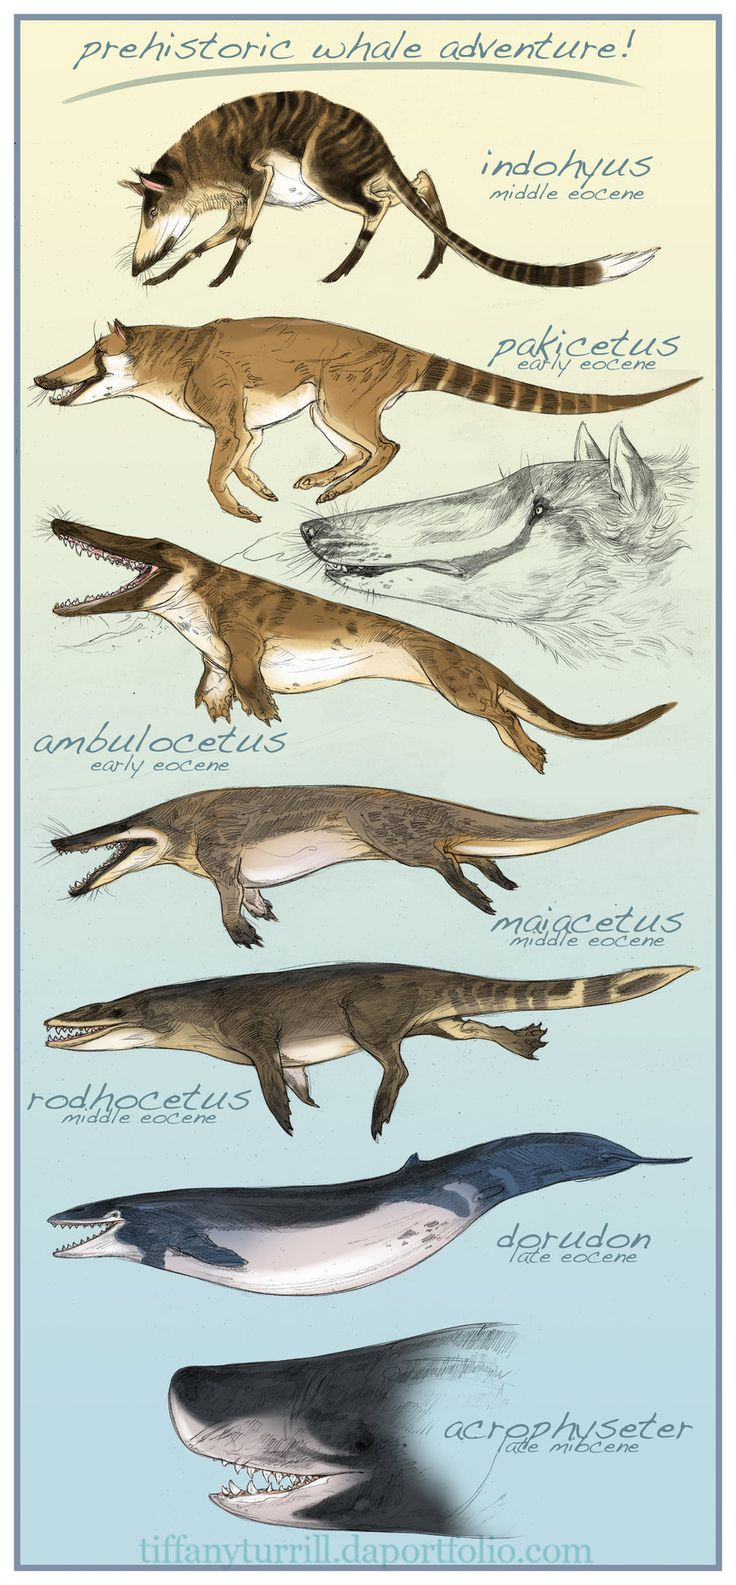 gallantcannibal:    Prehistoric whale evolution, illustrated by Tiffany Turrill.    OMFG you guys. your comments are amazing. XDthis is why i stay on Tumblr.